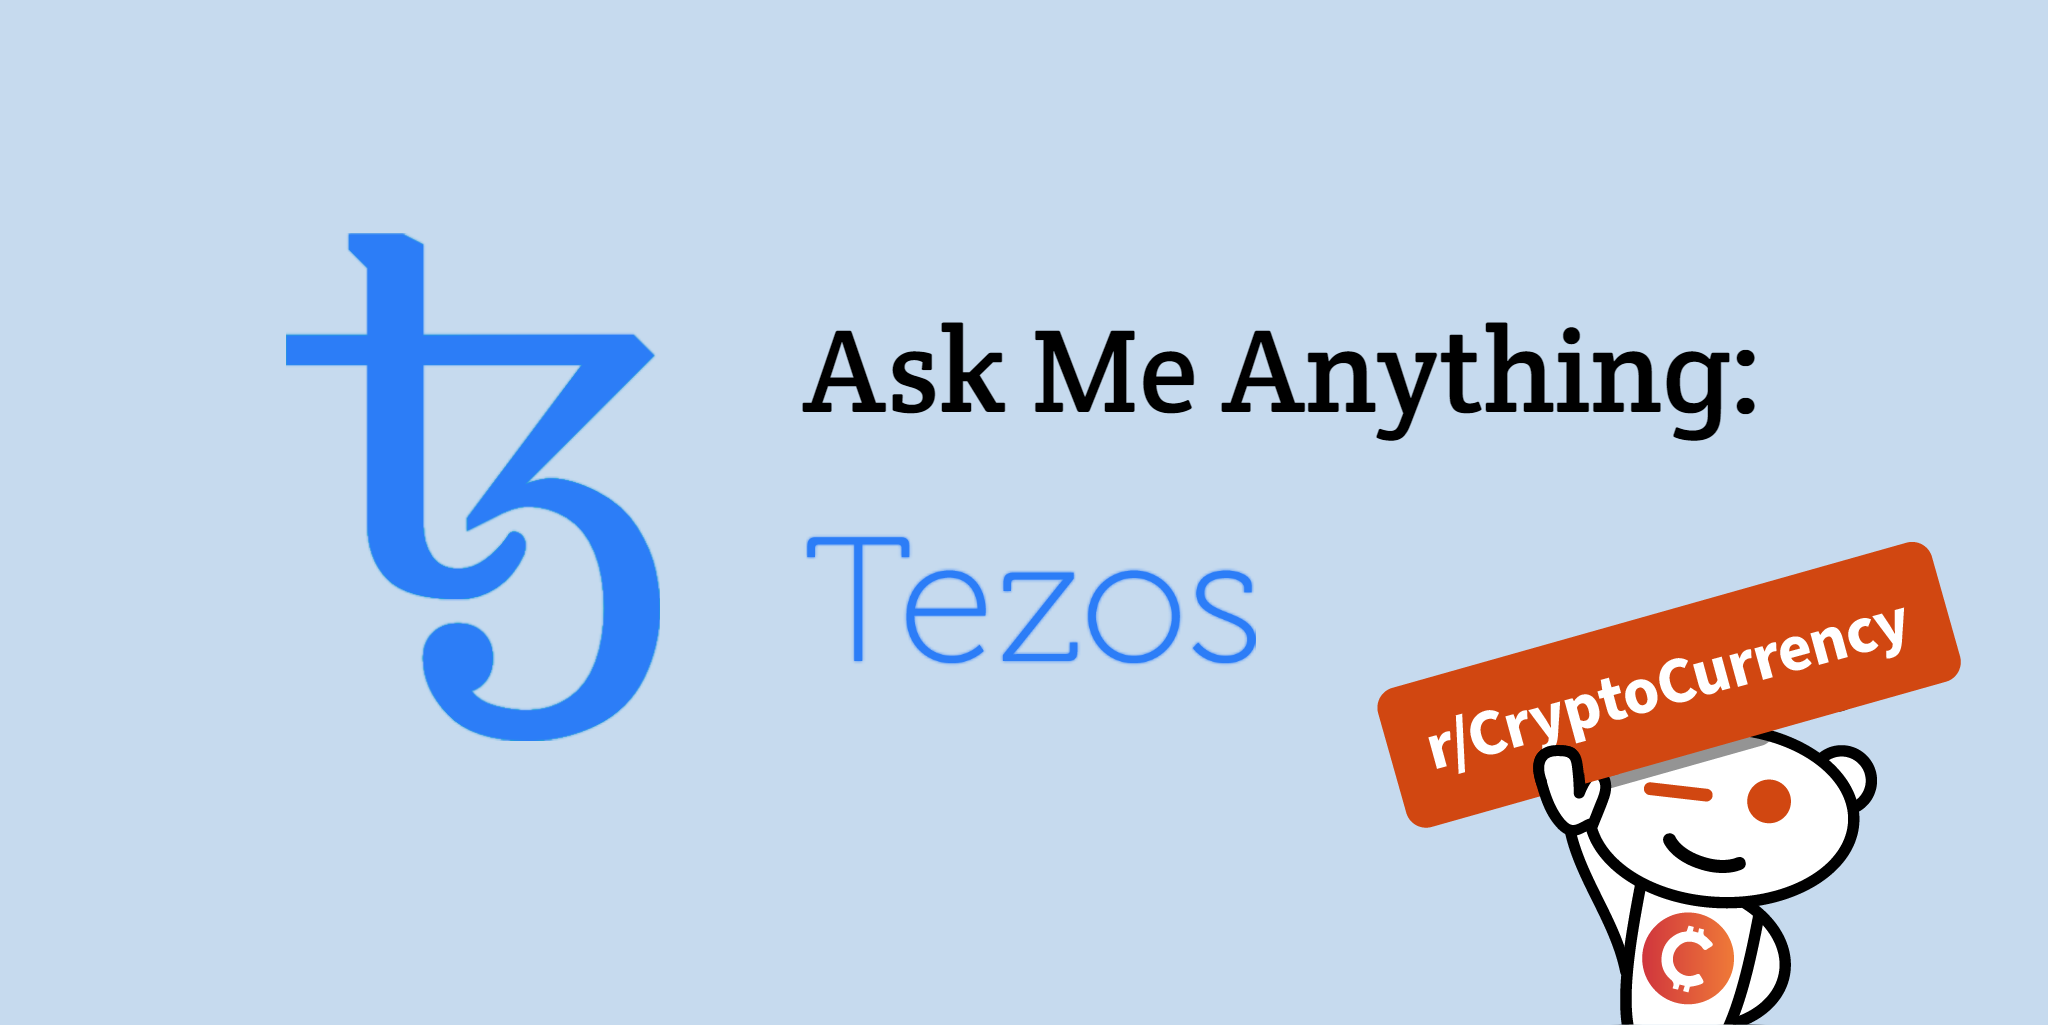 Featuring Tezos co-founder, Arthur Breitman, starting at 12pm EST.